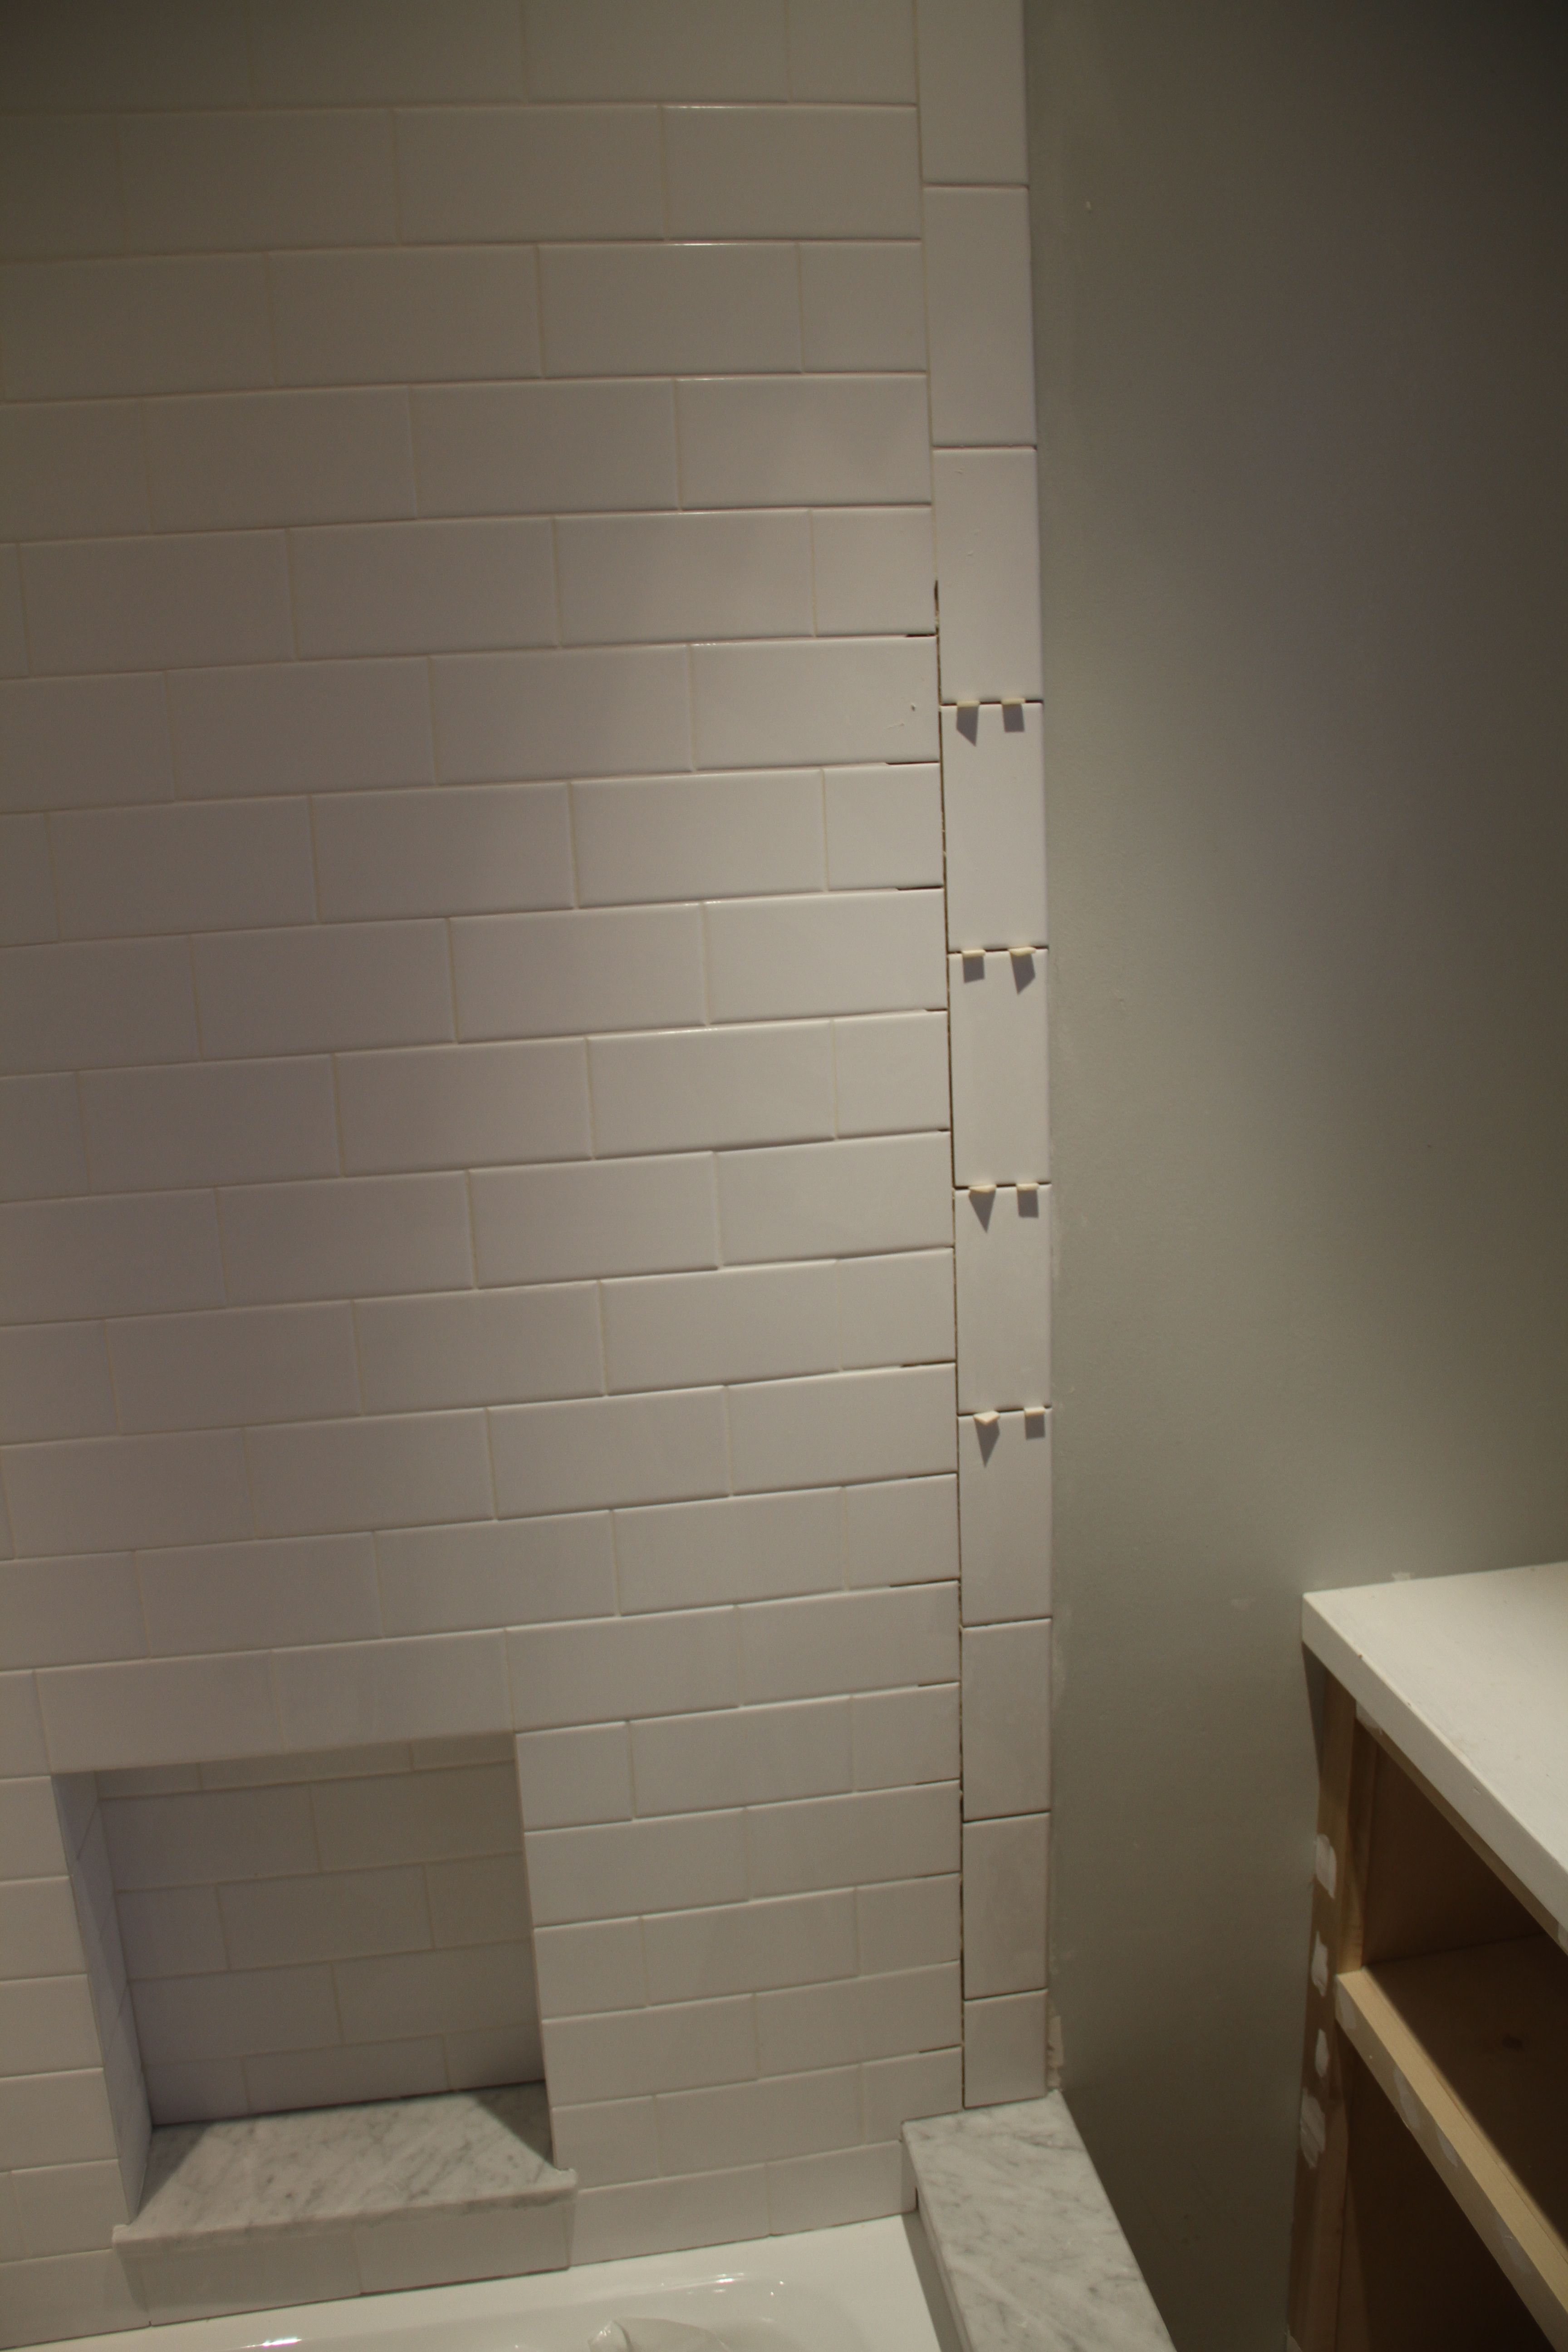 Isn't it amazing how different it looks with grout? And this was before it was totally finished.